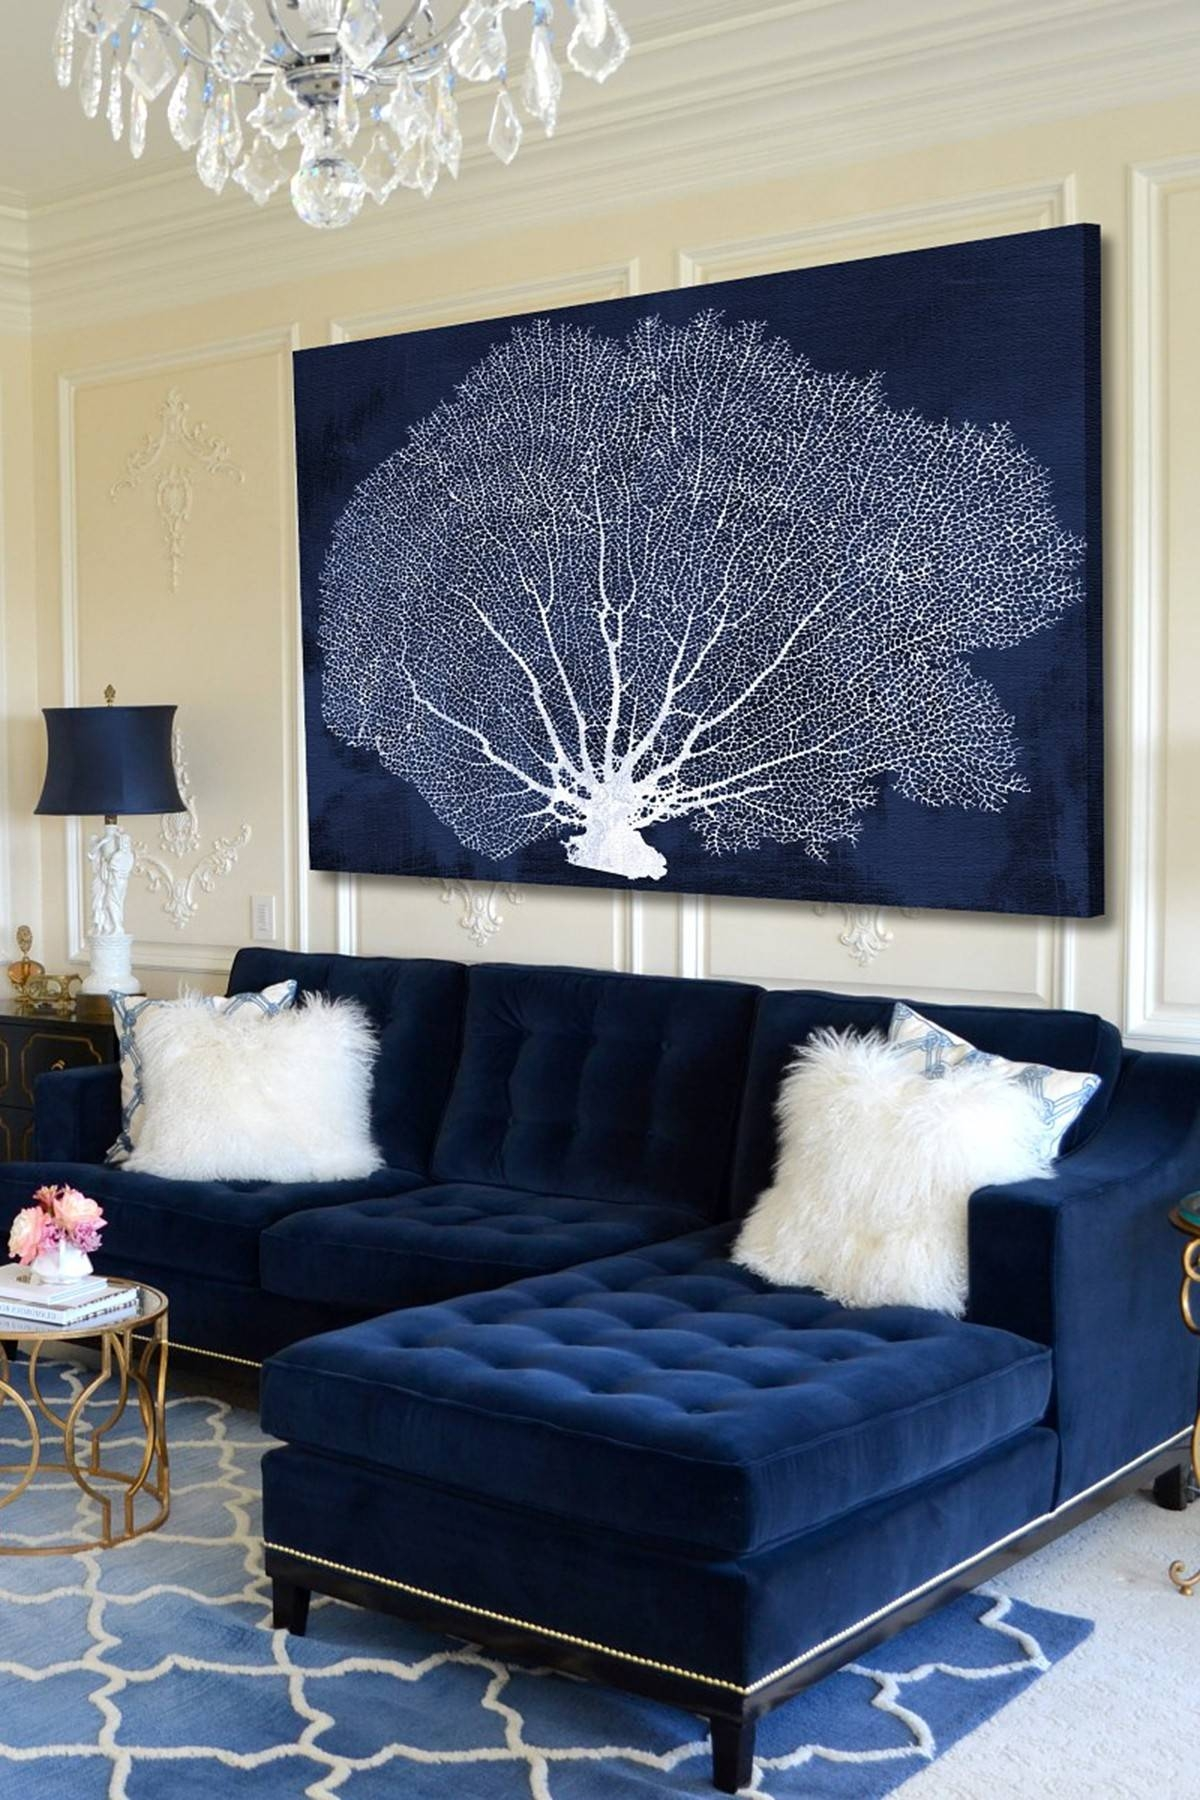 Prepossessing Wall Art For Living Room Design Ideas Showcasing Throughout Most Current Sofa Size Wall Art (View 6 of 20)